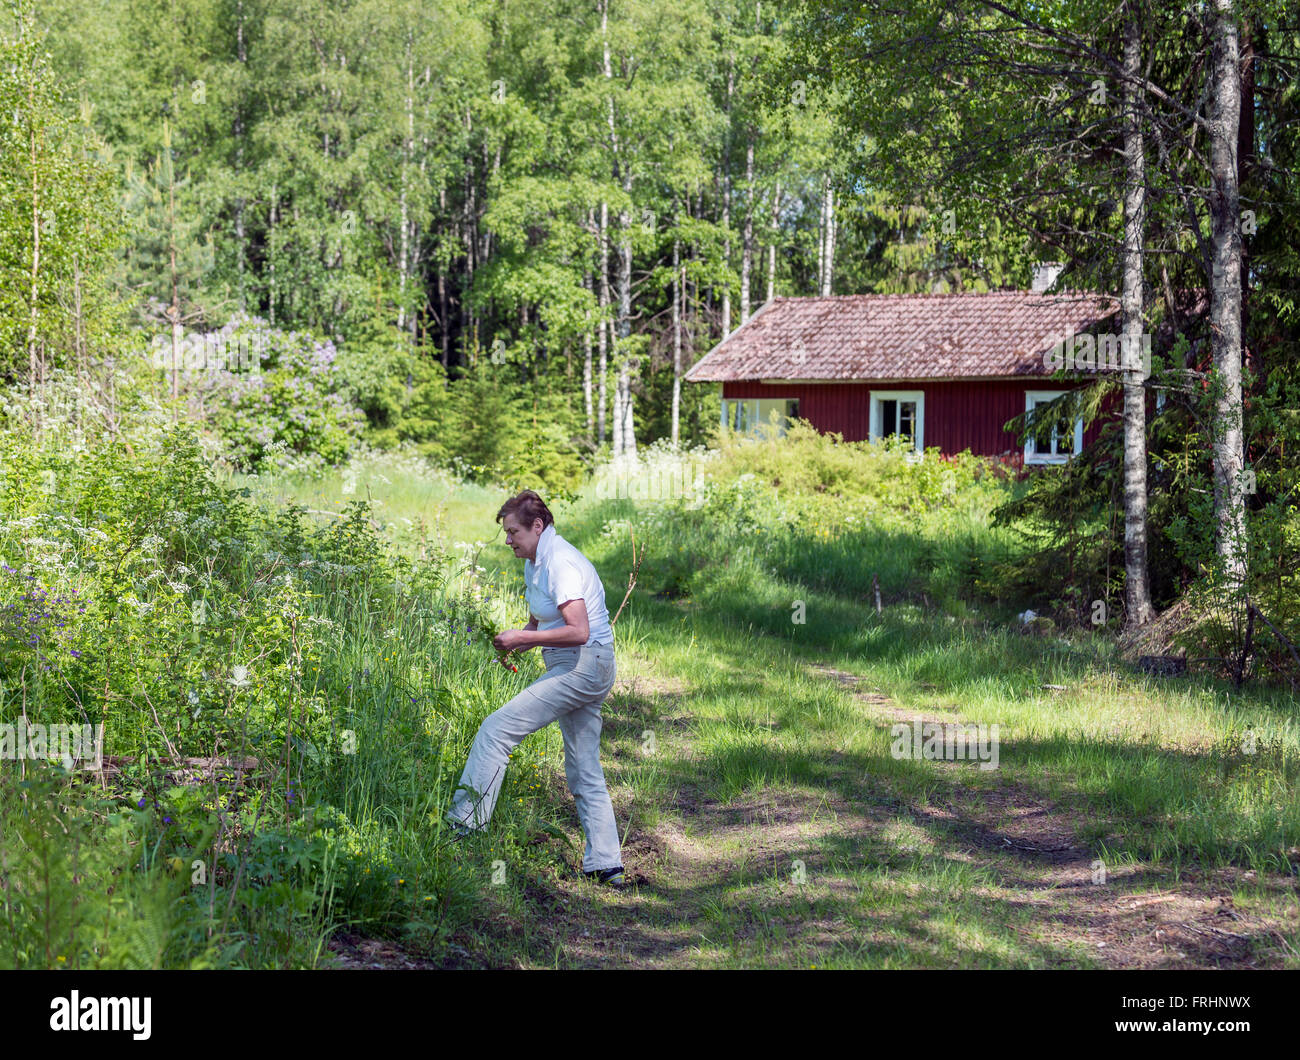 Woman picking flowers at abandoned croft, Sweden - Stock Image